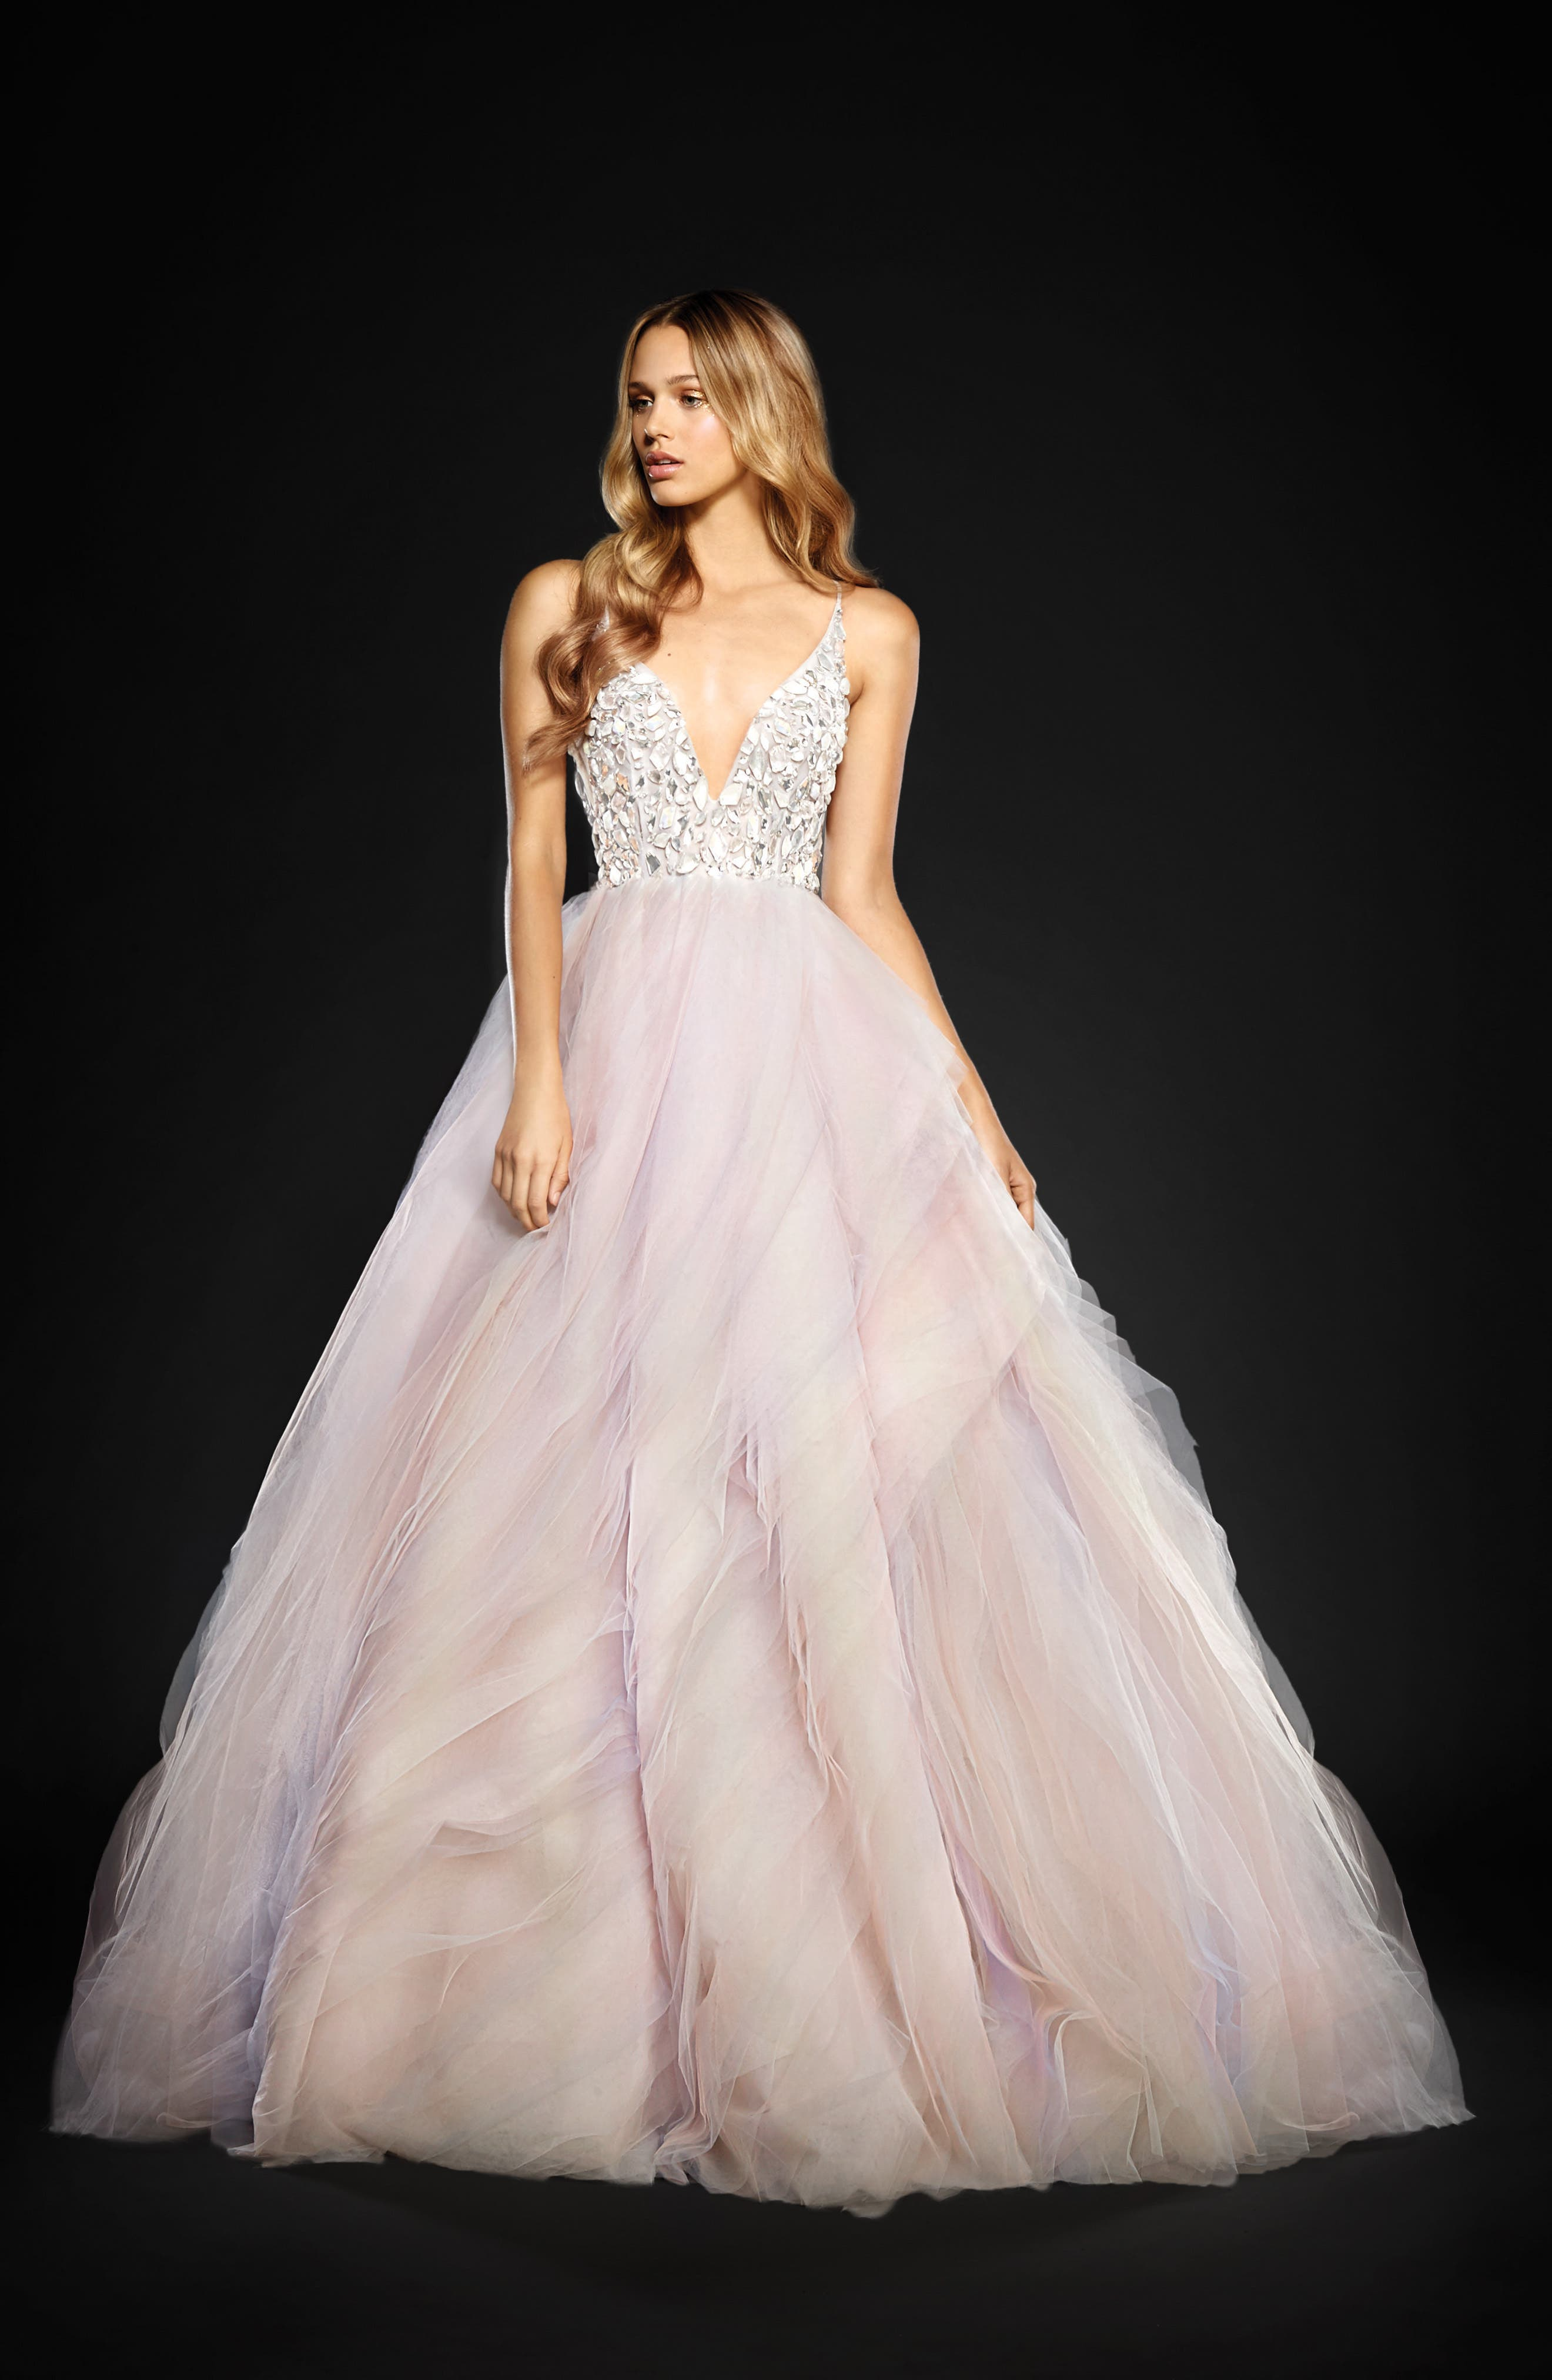 Jem Rock Candy Embellished Tulle Ballgown,                             Main thumbnail 1, color,                             900